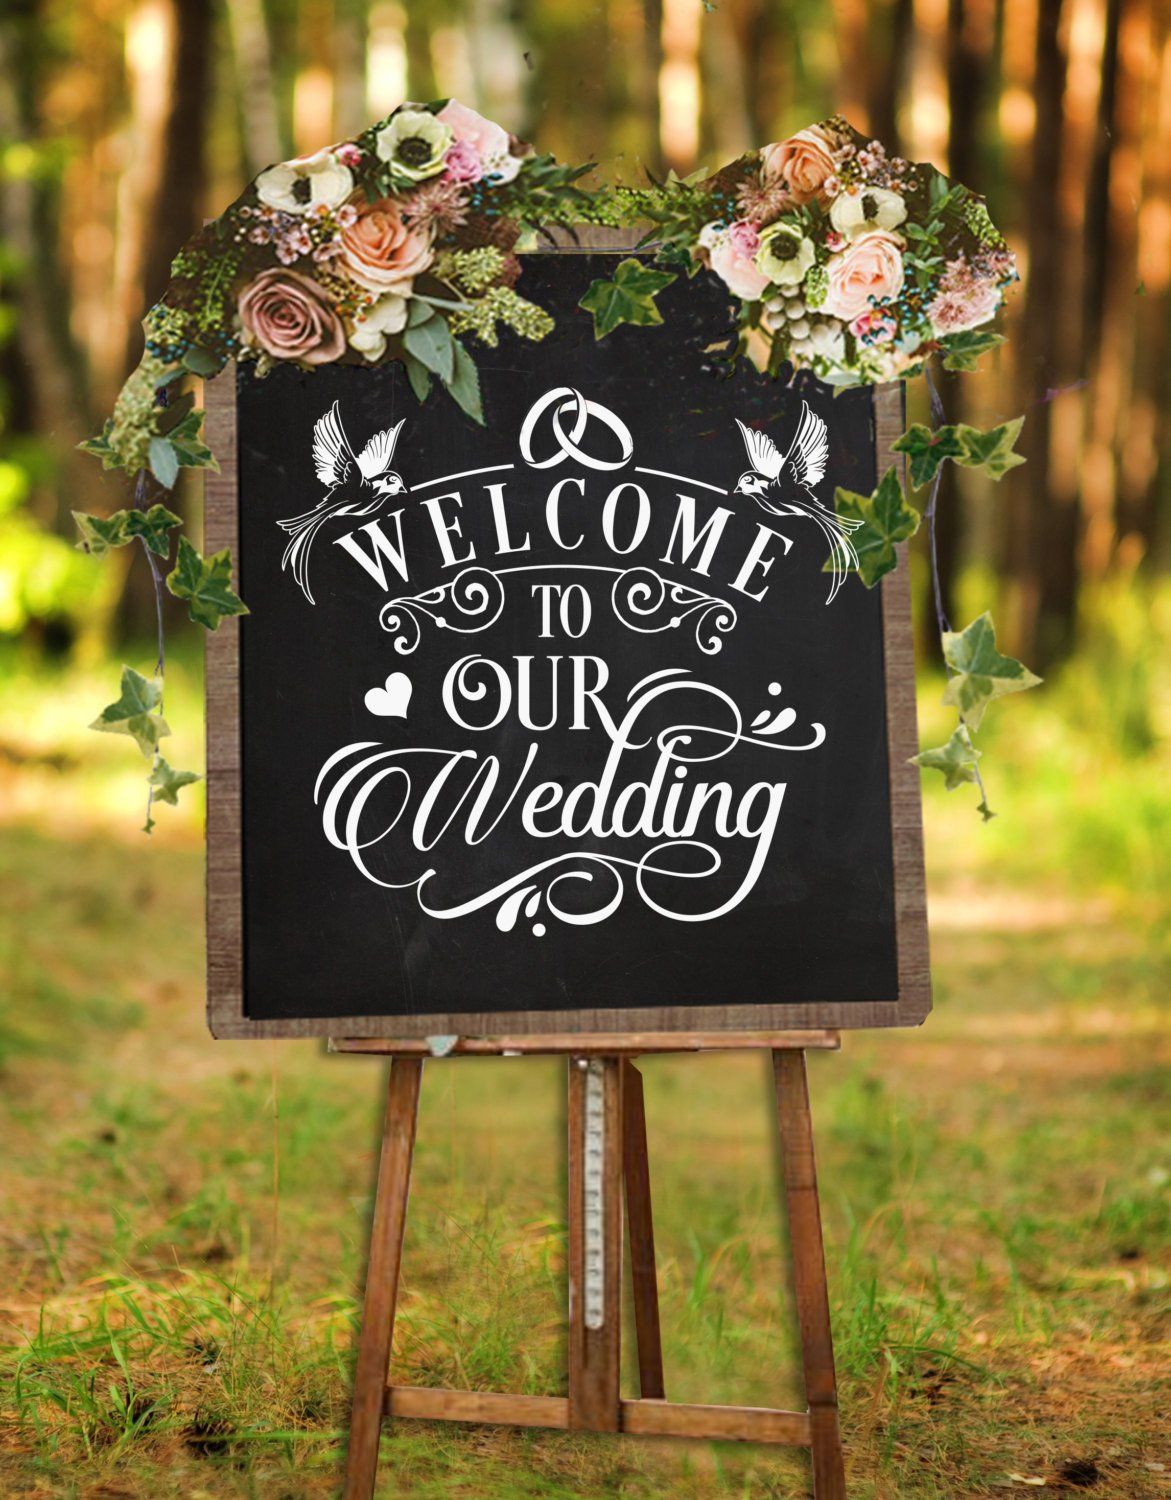 Welcome to our wedding sign SVG file Cutting File Clipart in Svg, Eps, Dxf,  Png for Cricut & Silhouette svg.